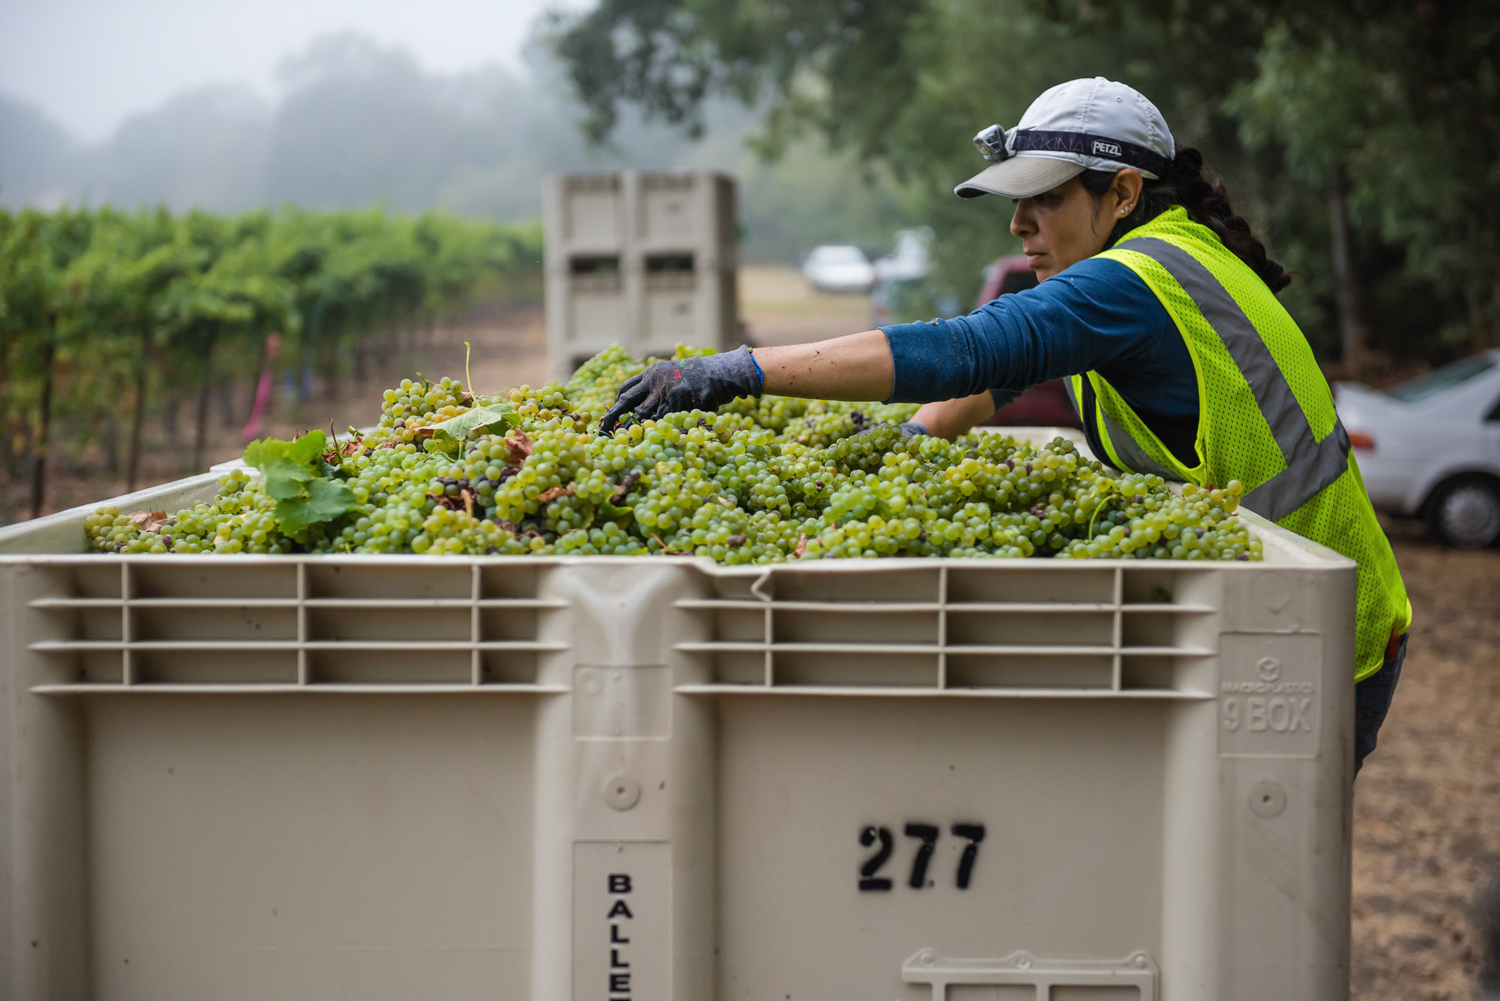 Vineyard_worker_caring_for_Sauv_Blanc_grapes_in_bin.png